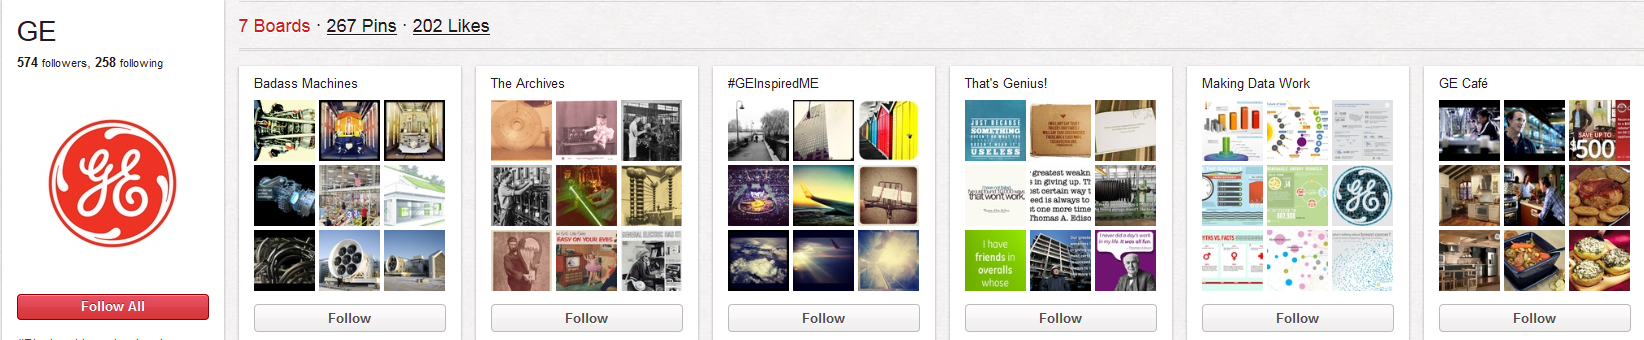 General Electric Profile on Pinterest